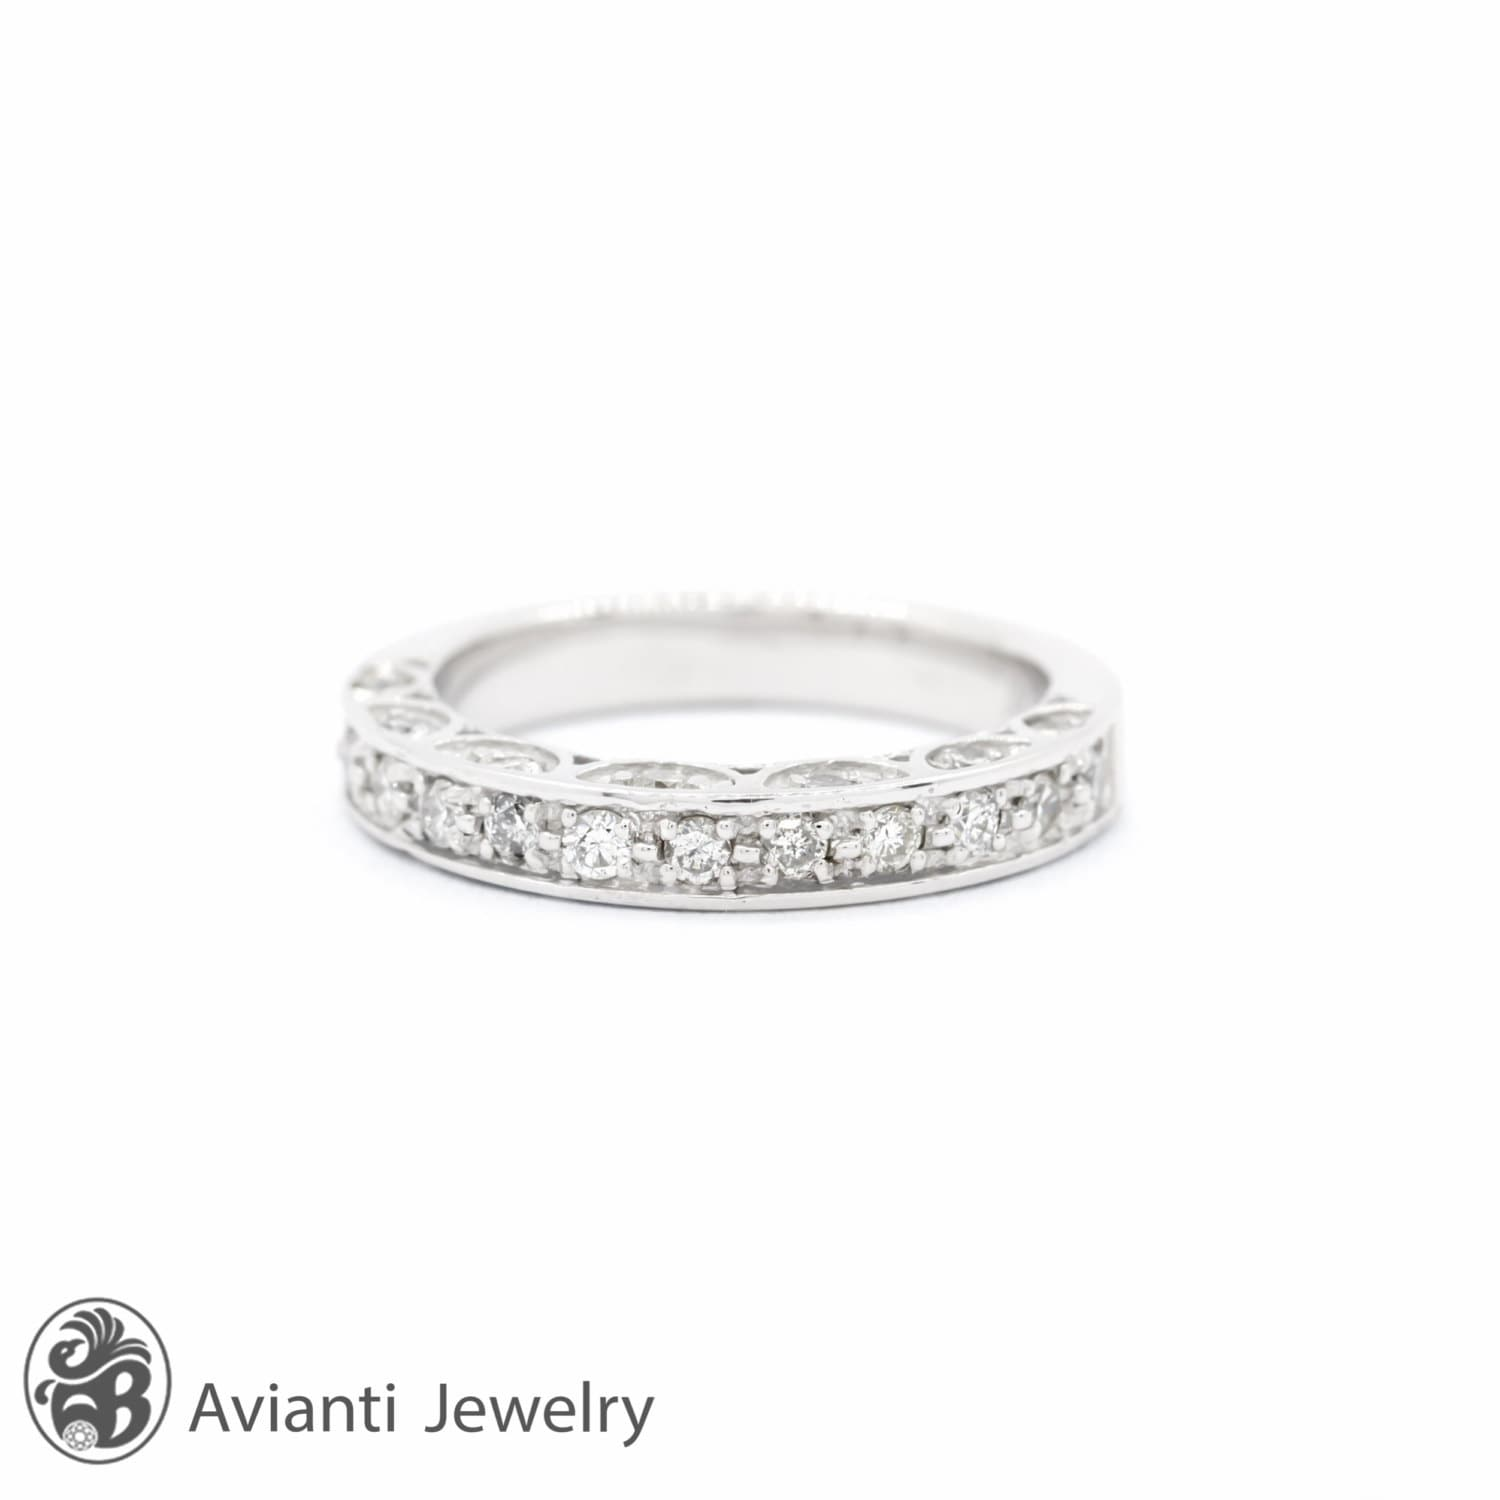 rings vintage diamond engagement style bands for women